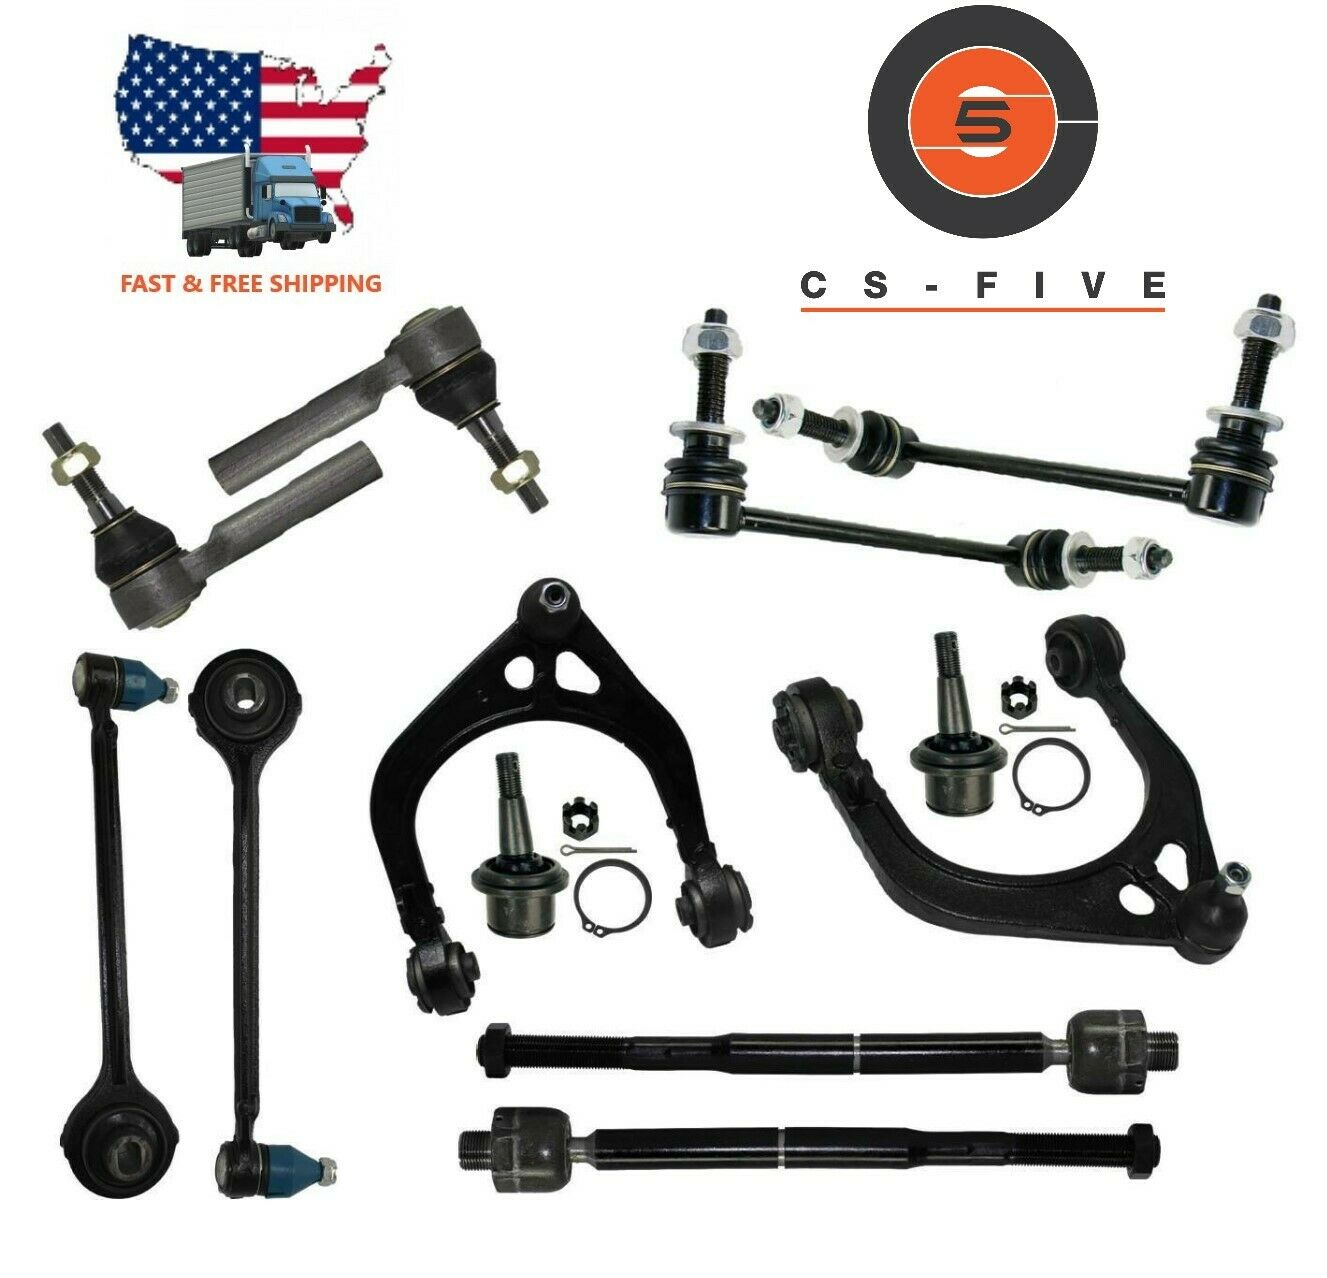 16 Pcs Complete Front End Steering Rebuild Package Kit CHRYSLER 300 2005 - 2010